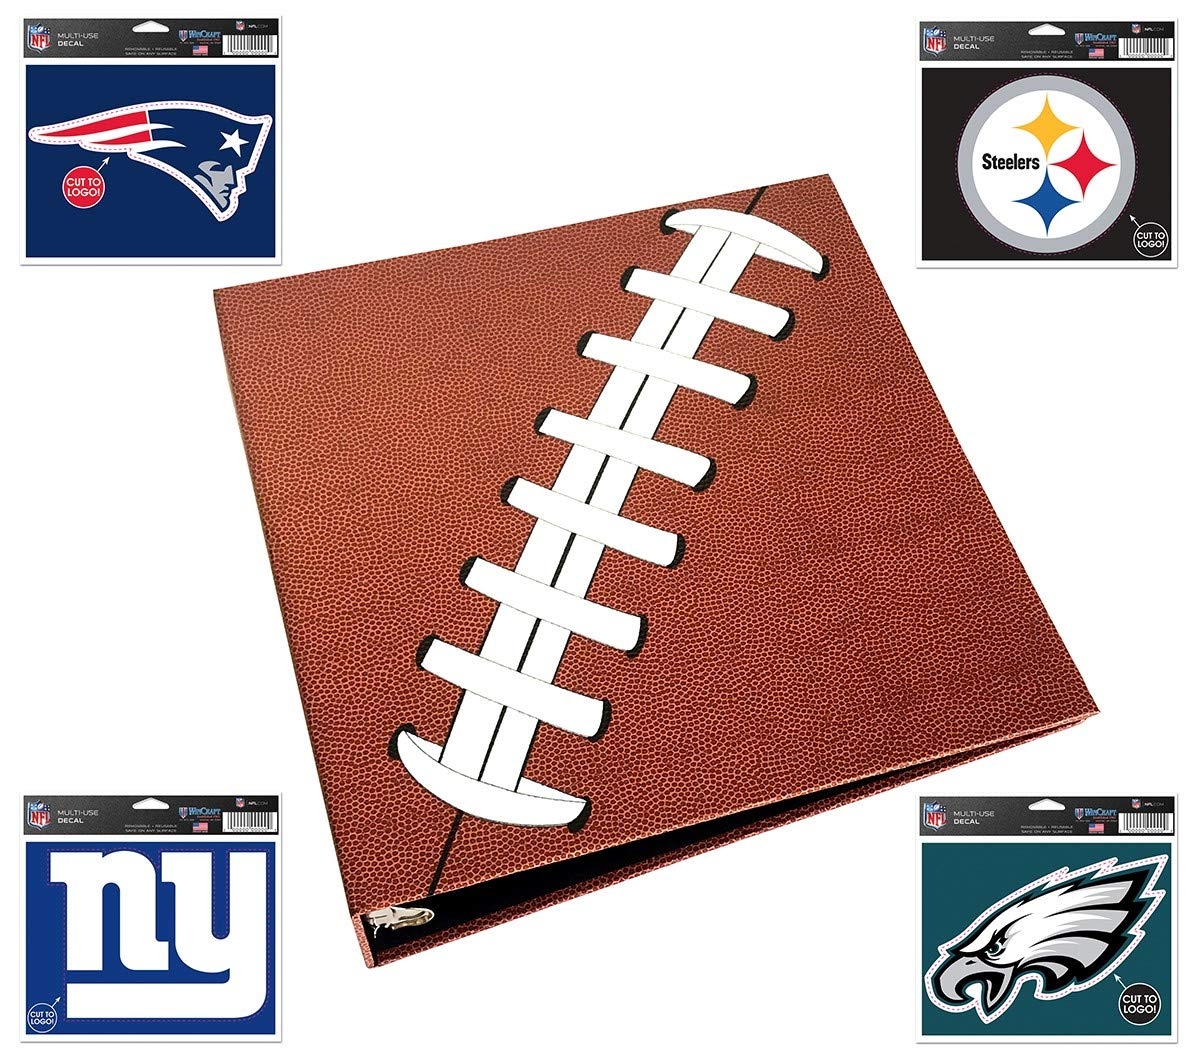 Pigskinz - 3 Ring Football Binder - Embossed Paper Looks and Feels Like a Real Football - Football Card Binder by allstarpaperz